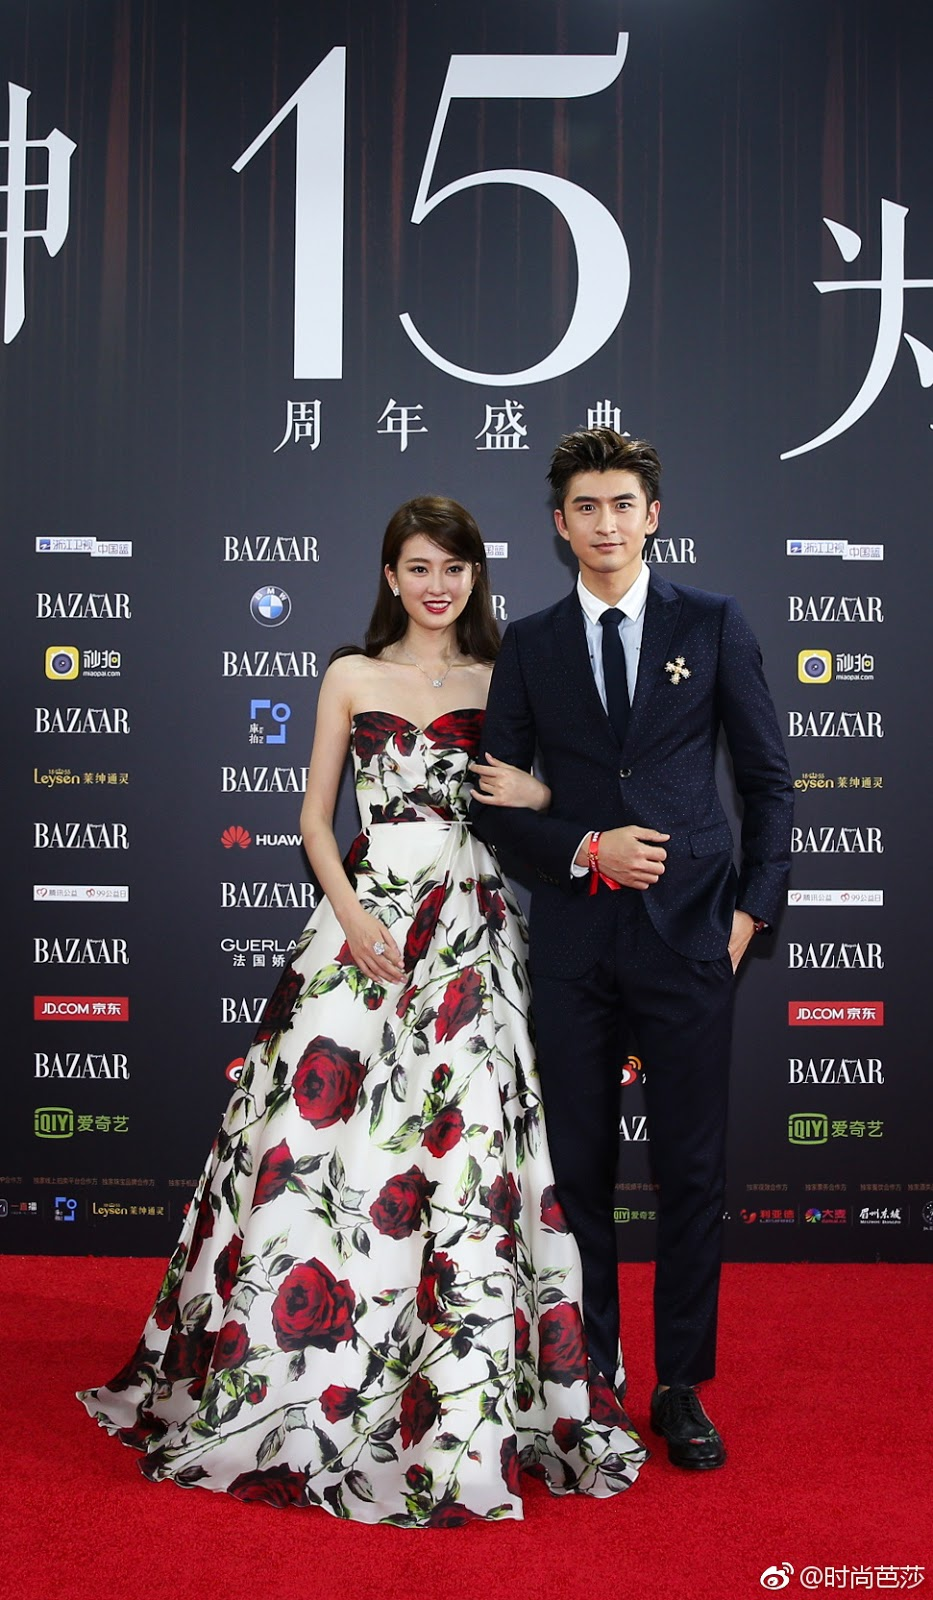 Qiao Xin Red Carpet Leon Zhang